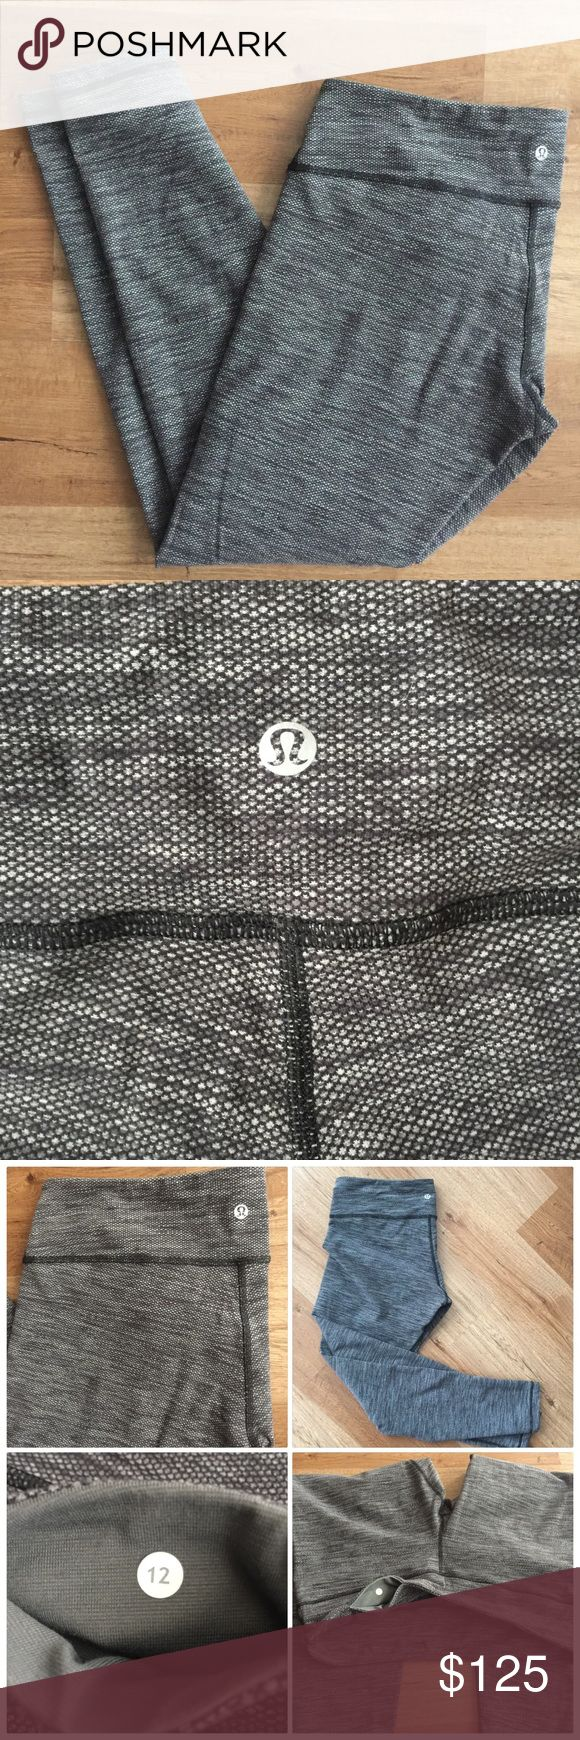 LuluLemon Wunder Under Coco Pique Pant - Size 12 In PERFECT condition. Never worn size 12 LuluLemon Wunder Under Coco Pique pants. Older thicker Lulu Luon and super soft! Has reflective Lulu logo and hidden pocket at the waist. Perfect for colder weather. No pilling, marks, or signs of wear. No trades, no model. *Going for $163 on ebay* No longer sold in stores. lululemon athletica Pants Track Pants & Joggers